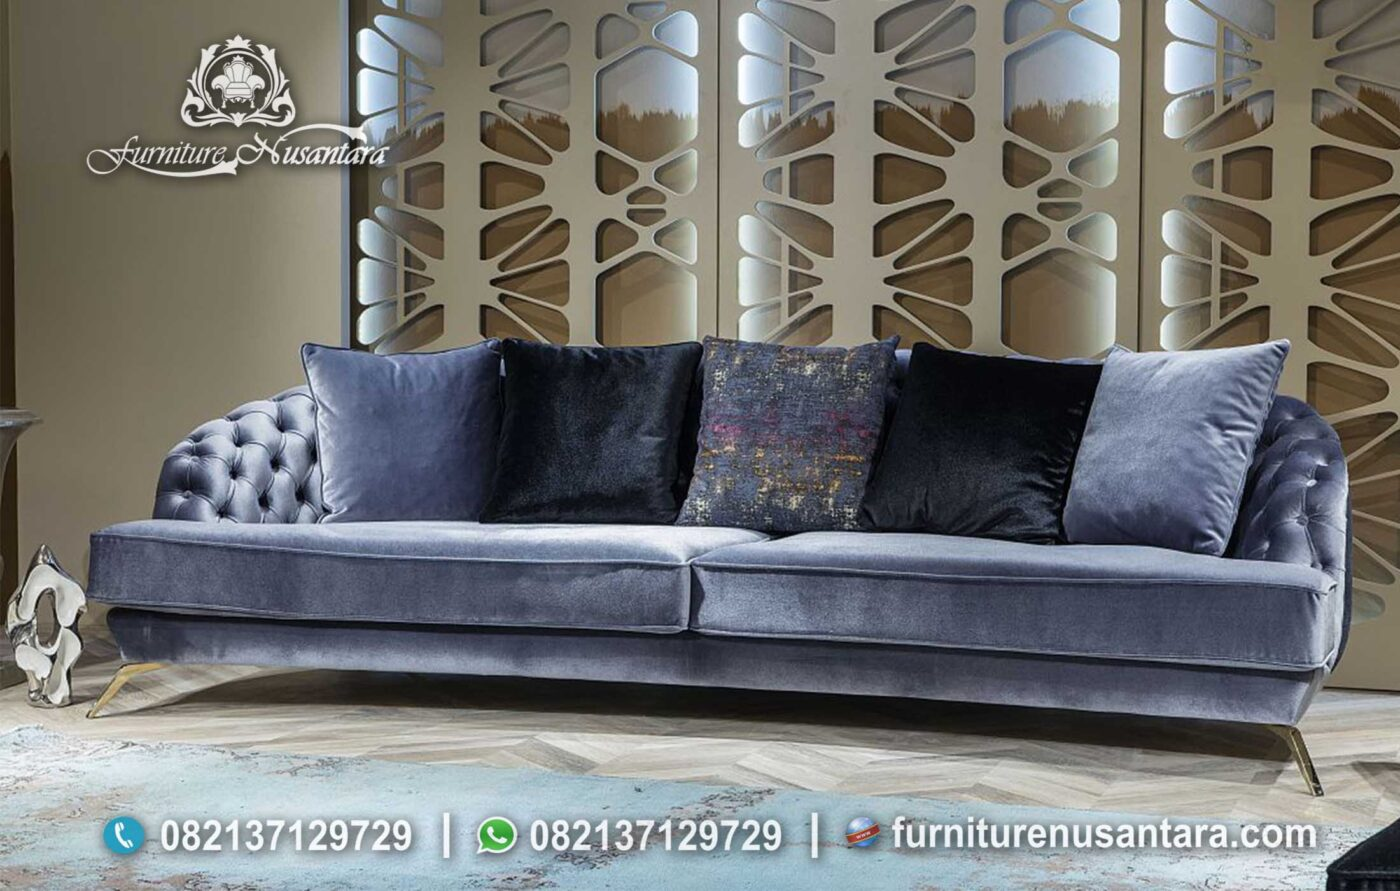 Sofa Minimalis Bergaya Korea ST-65, Furniture Nusantara